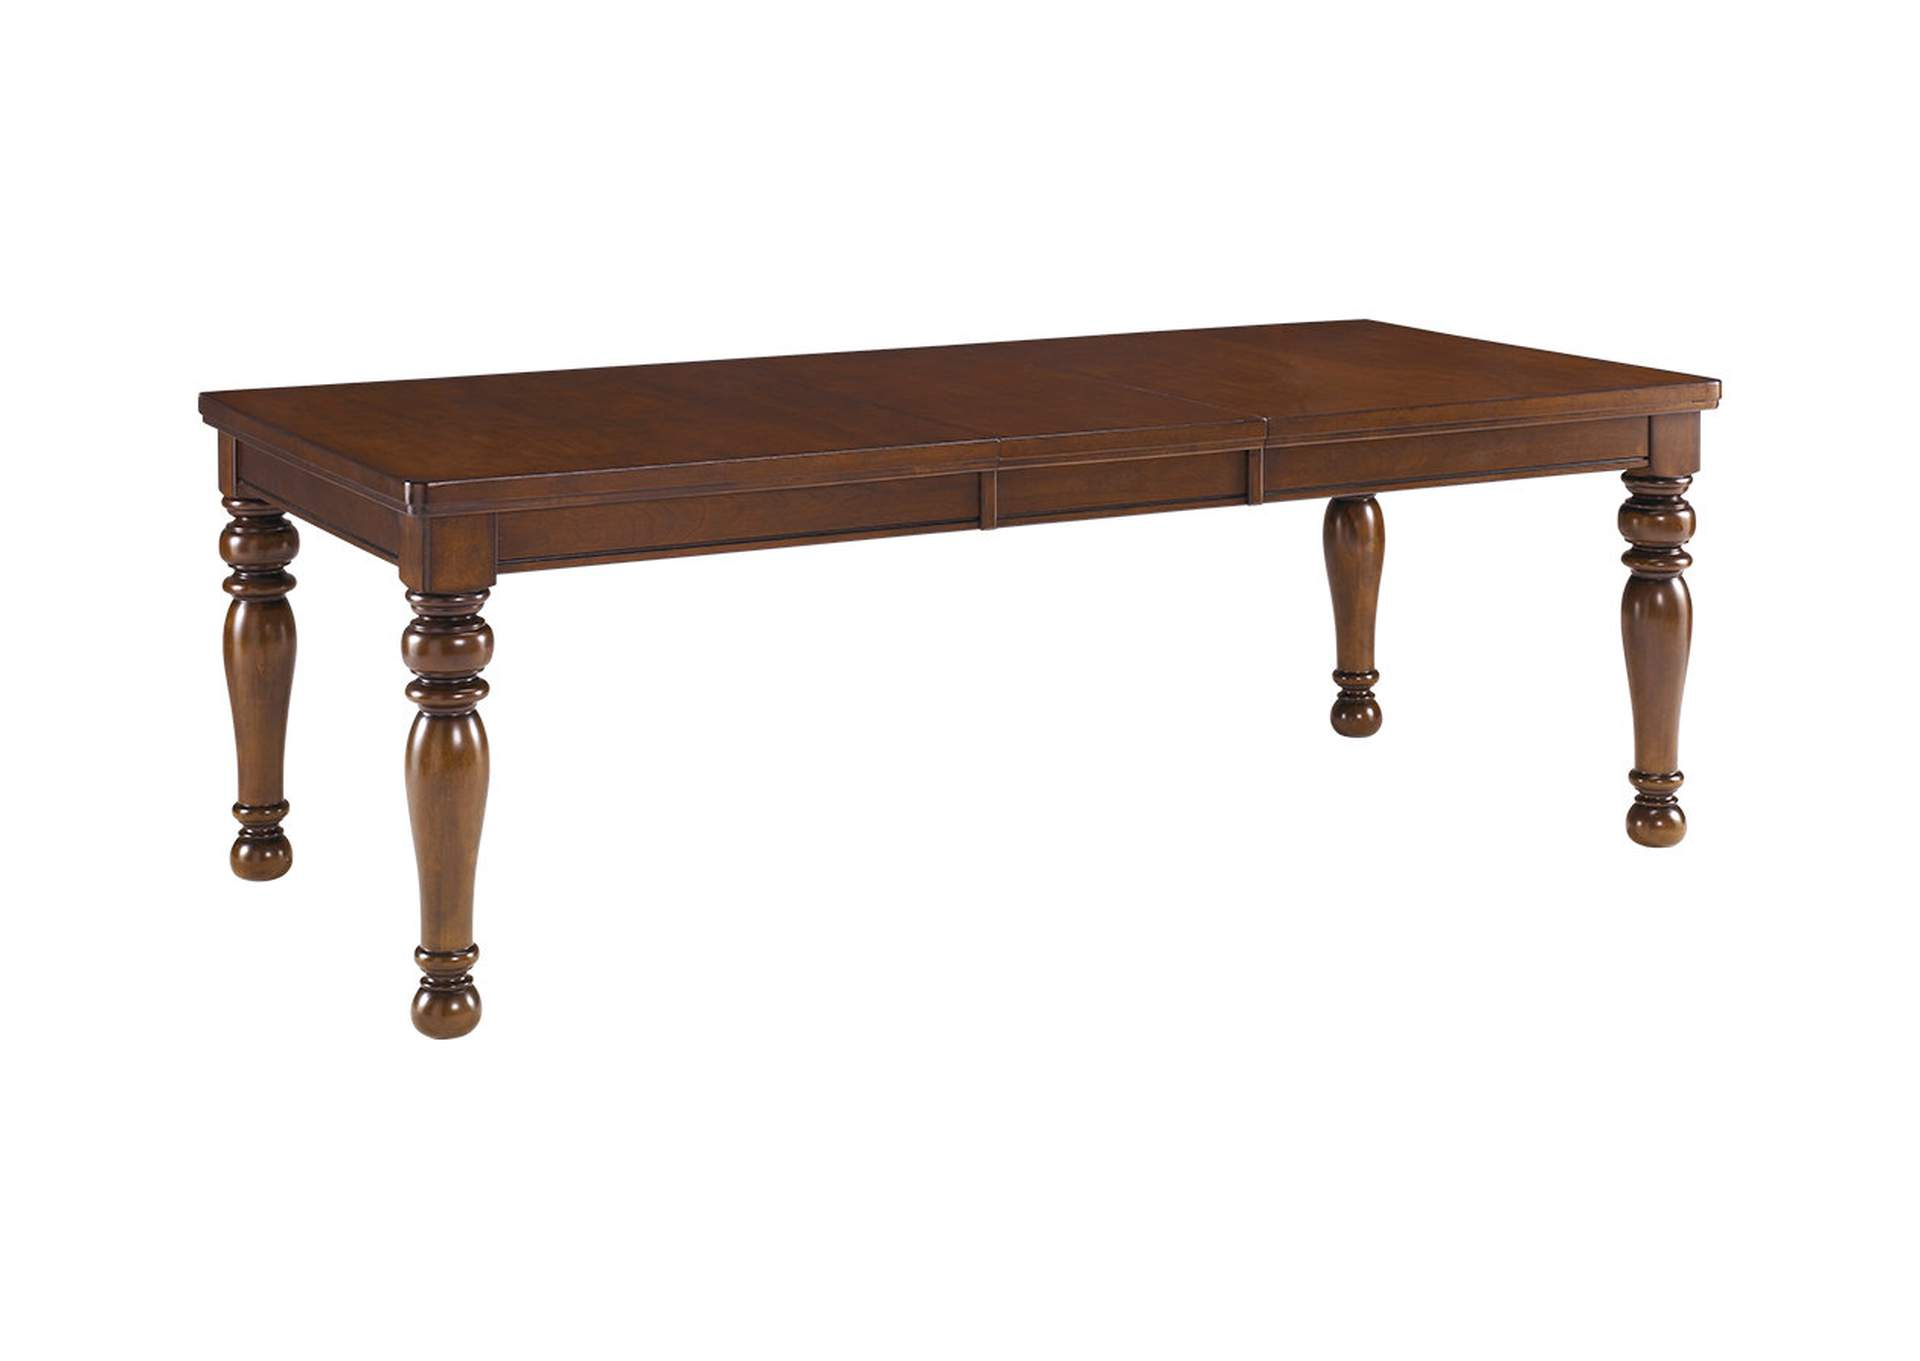 Porter Dining Room Extension Table,Millennium